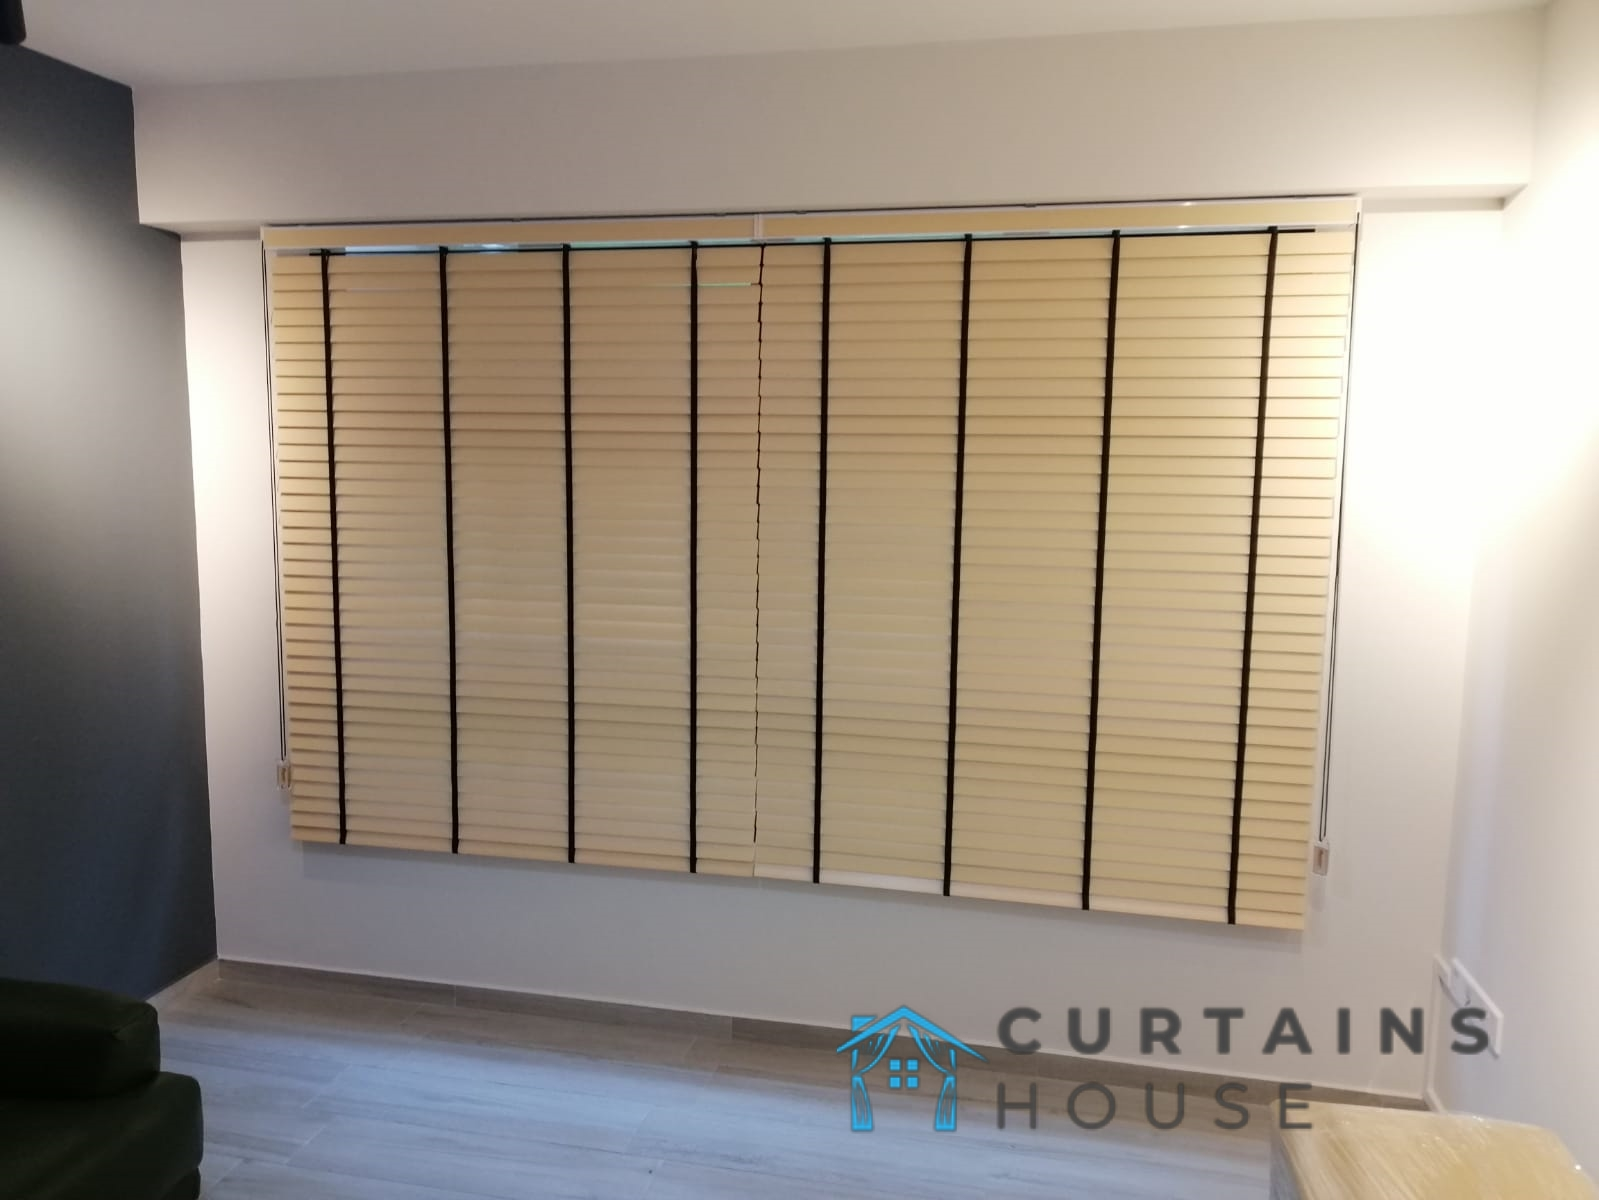 Venetian Blinds Wooden Blinds Curtains House Singapore HDB – Tiong Bahru